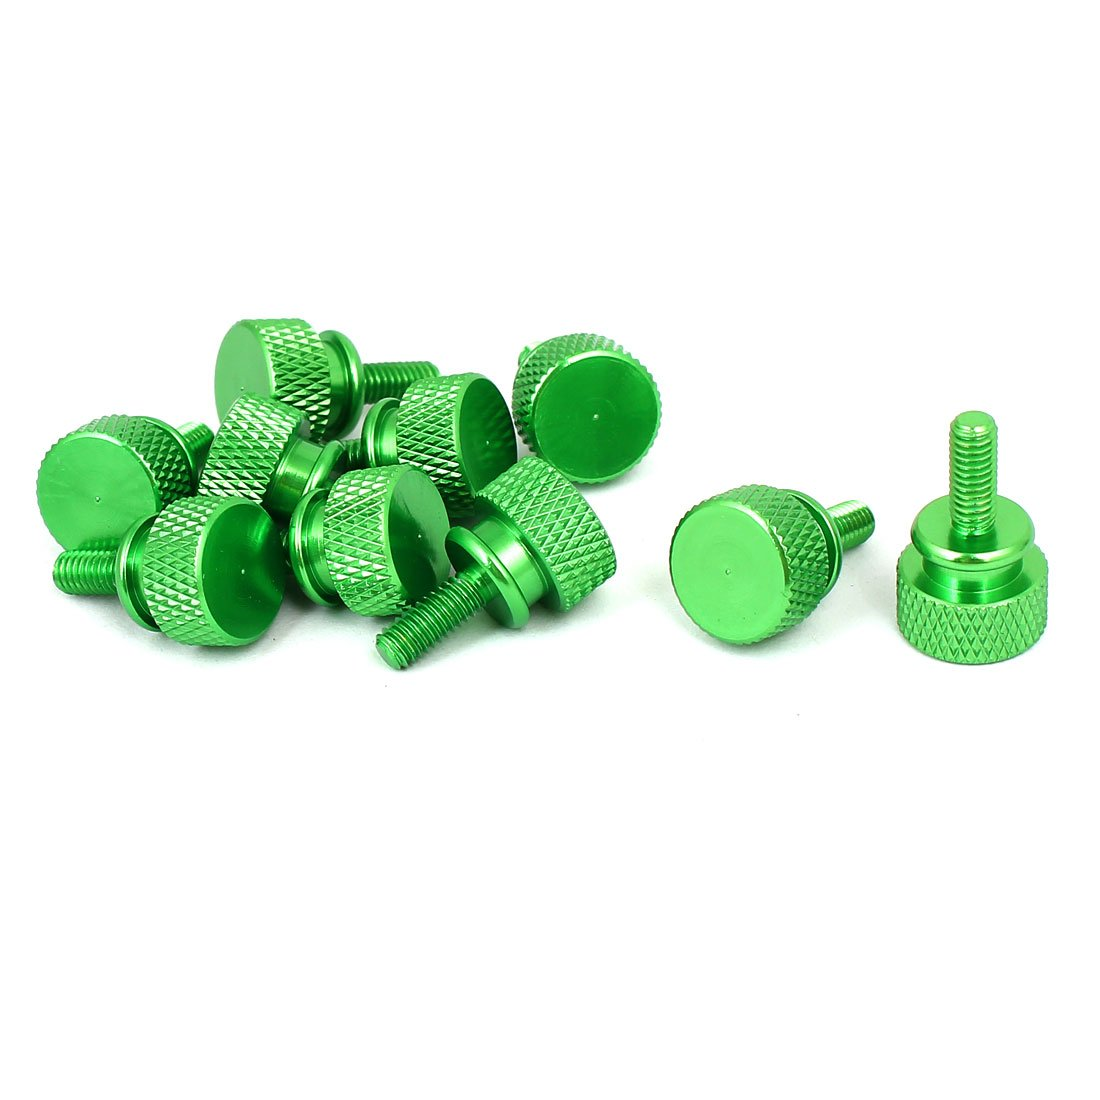 uxcell Computer PC Case M4x10mm Shoulder Type Knurled Thumb Screw Green 10pcs